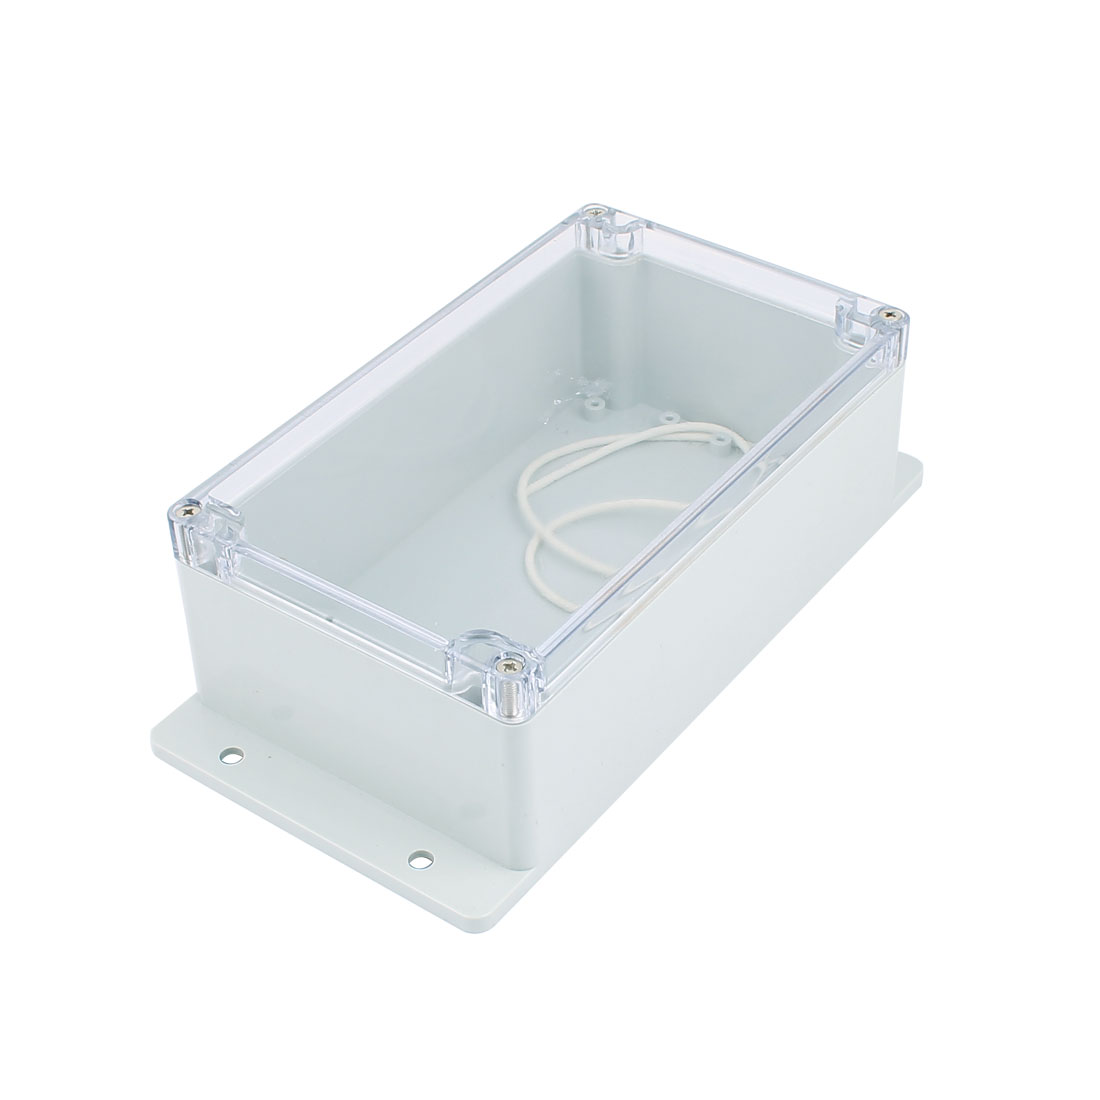 Dustproof IP65 Junction Box Case Terminal Connection Enclosure Adaptable 192mm x 112mm x 67mm